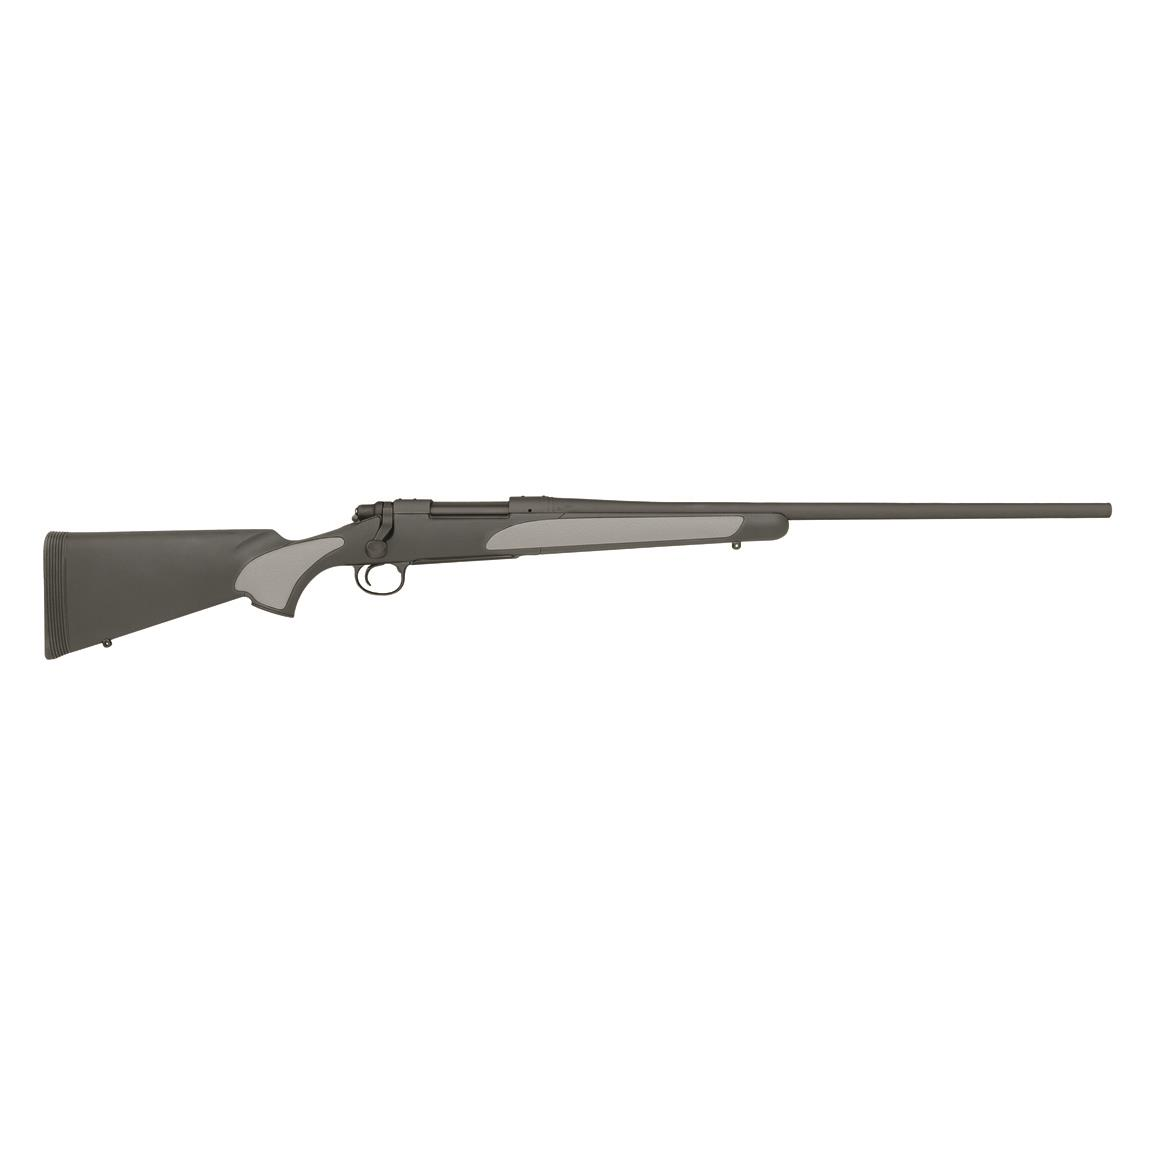 "Remington 700 SPS, Bolt Action, .243 Winchester, 20"" Barrel, 4+1 Rounds"